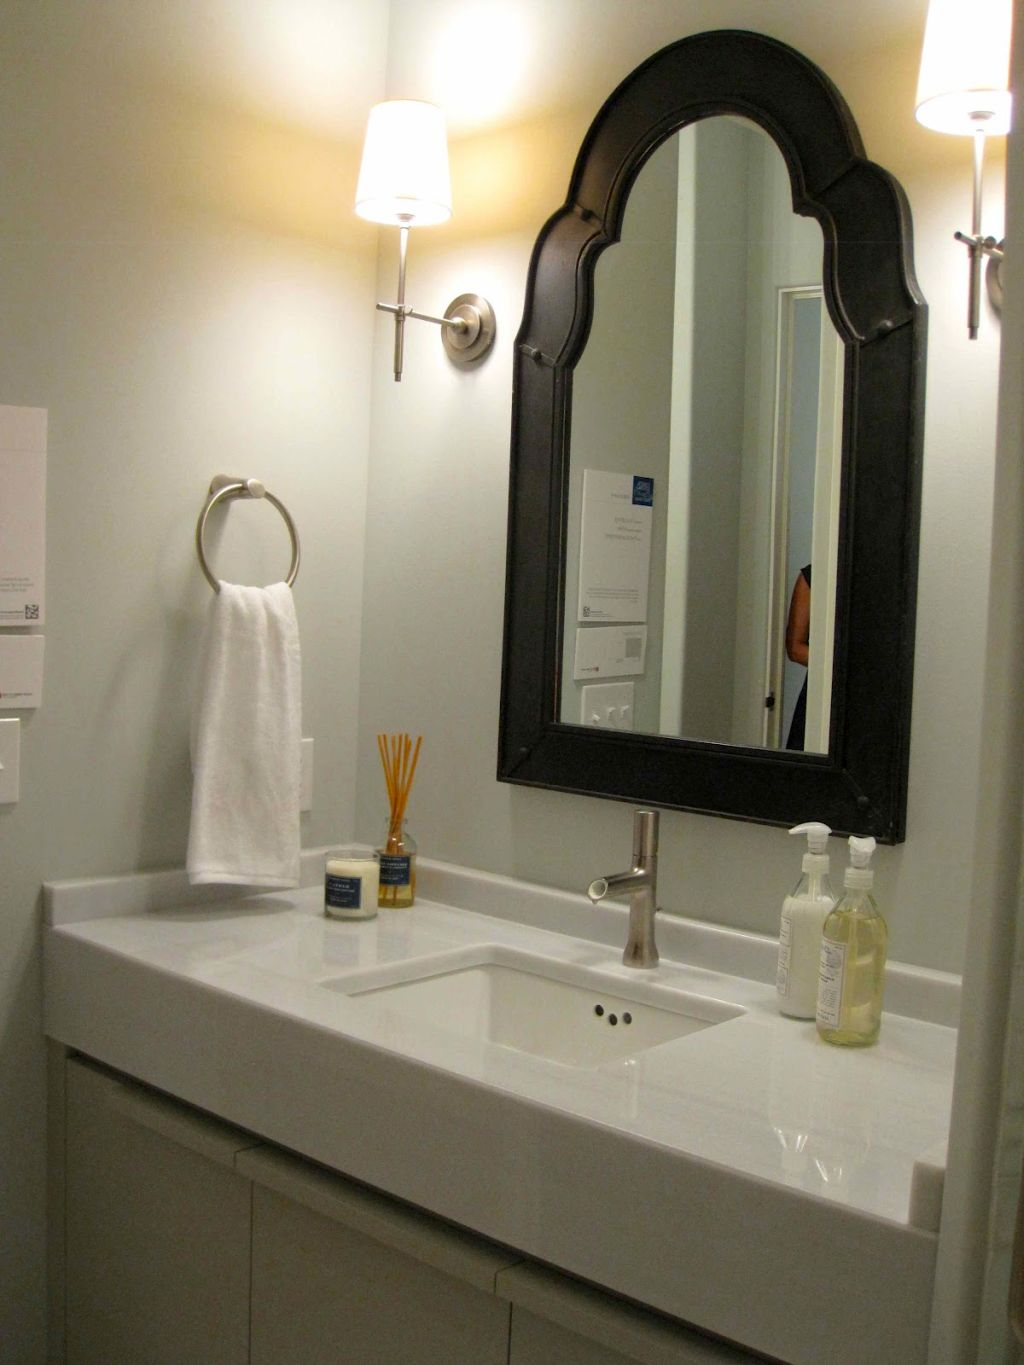 bathroom mirror large ideas mirrors interior  large rectangular bathroom mirror with white gild frames for. Outstanding Lighted Bathroom Mirror Powder Room Image Ideas With